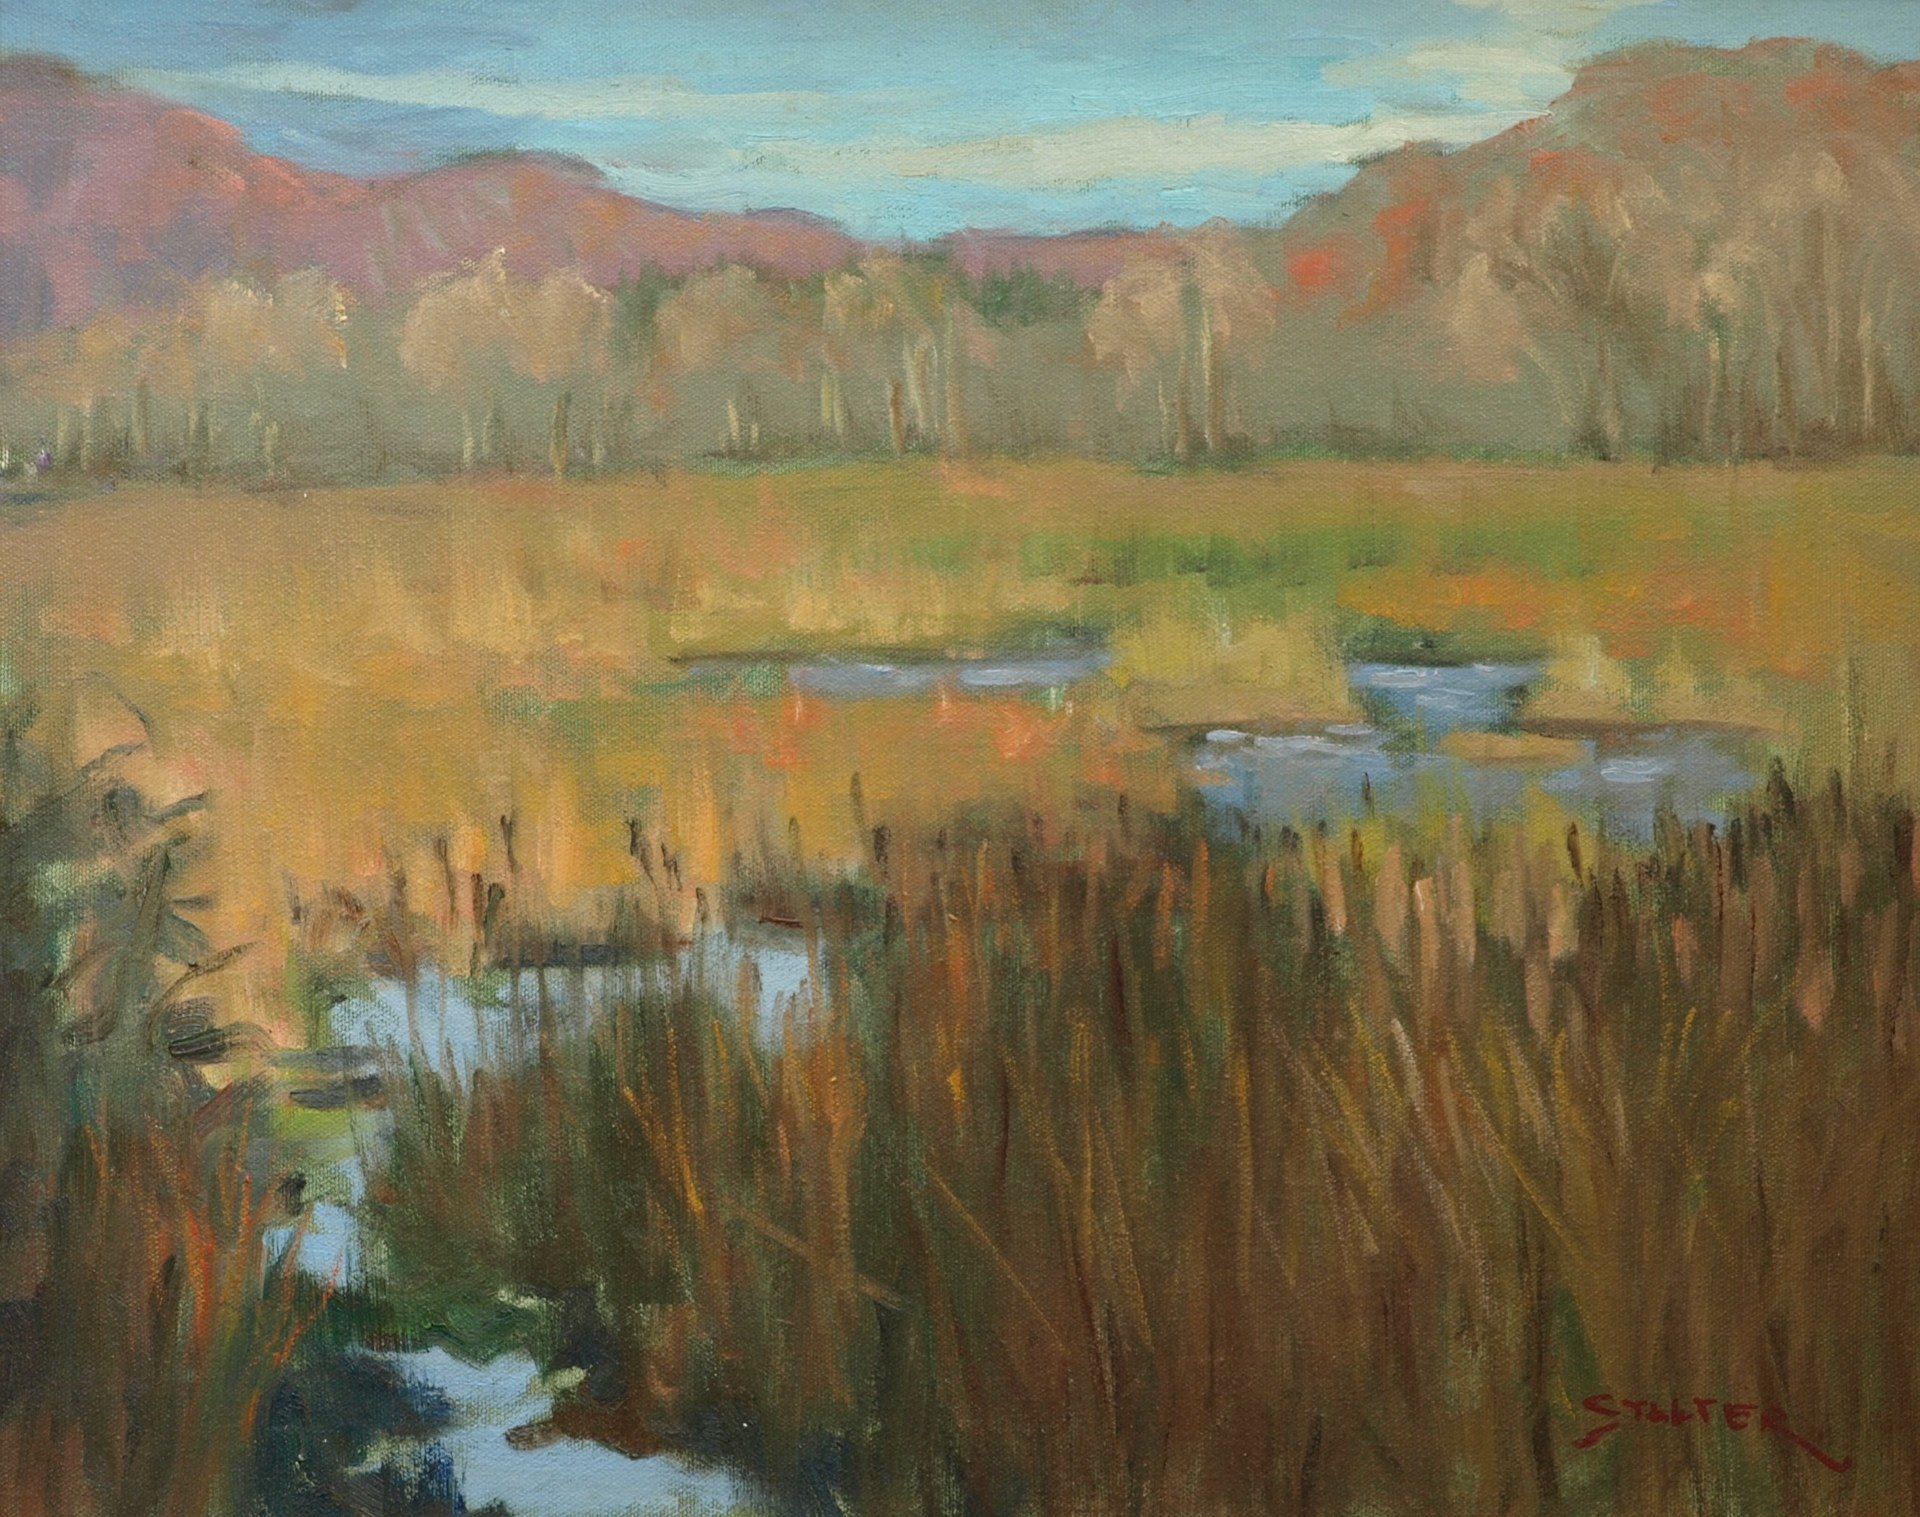 Austin's Marsh - Autumn, Oil on Canvas, 16 x 20 Inches, by Richard Stalter, $400